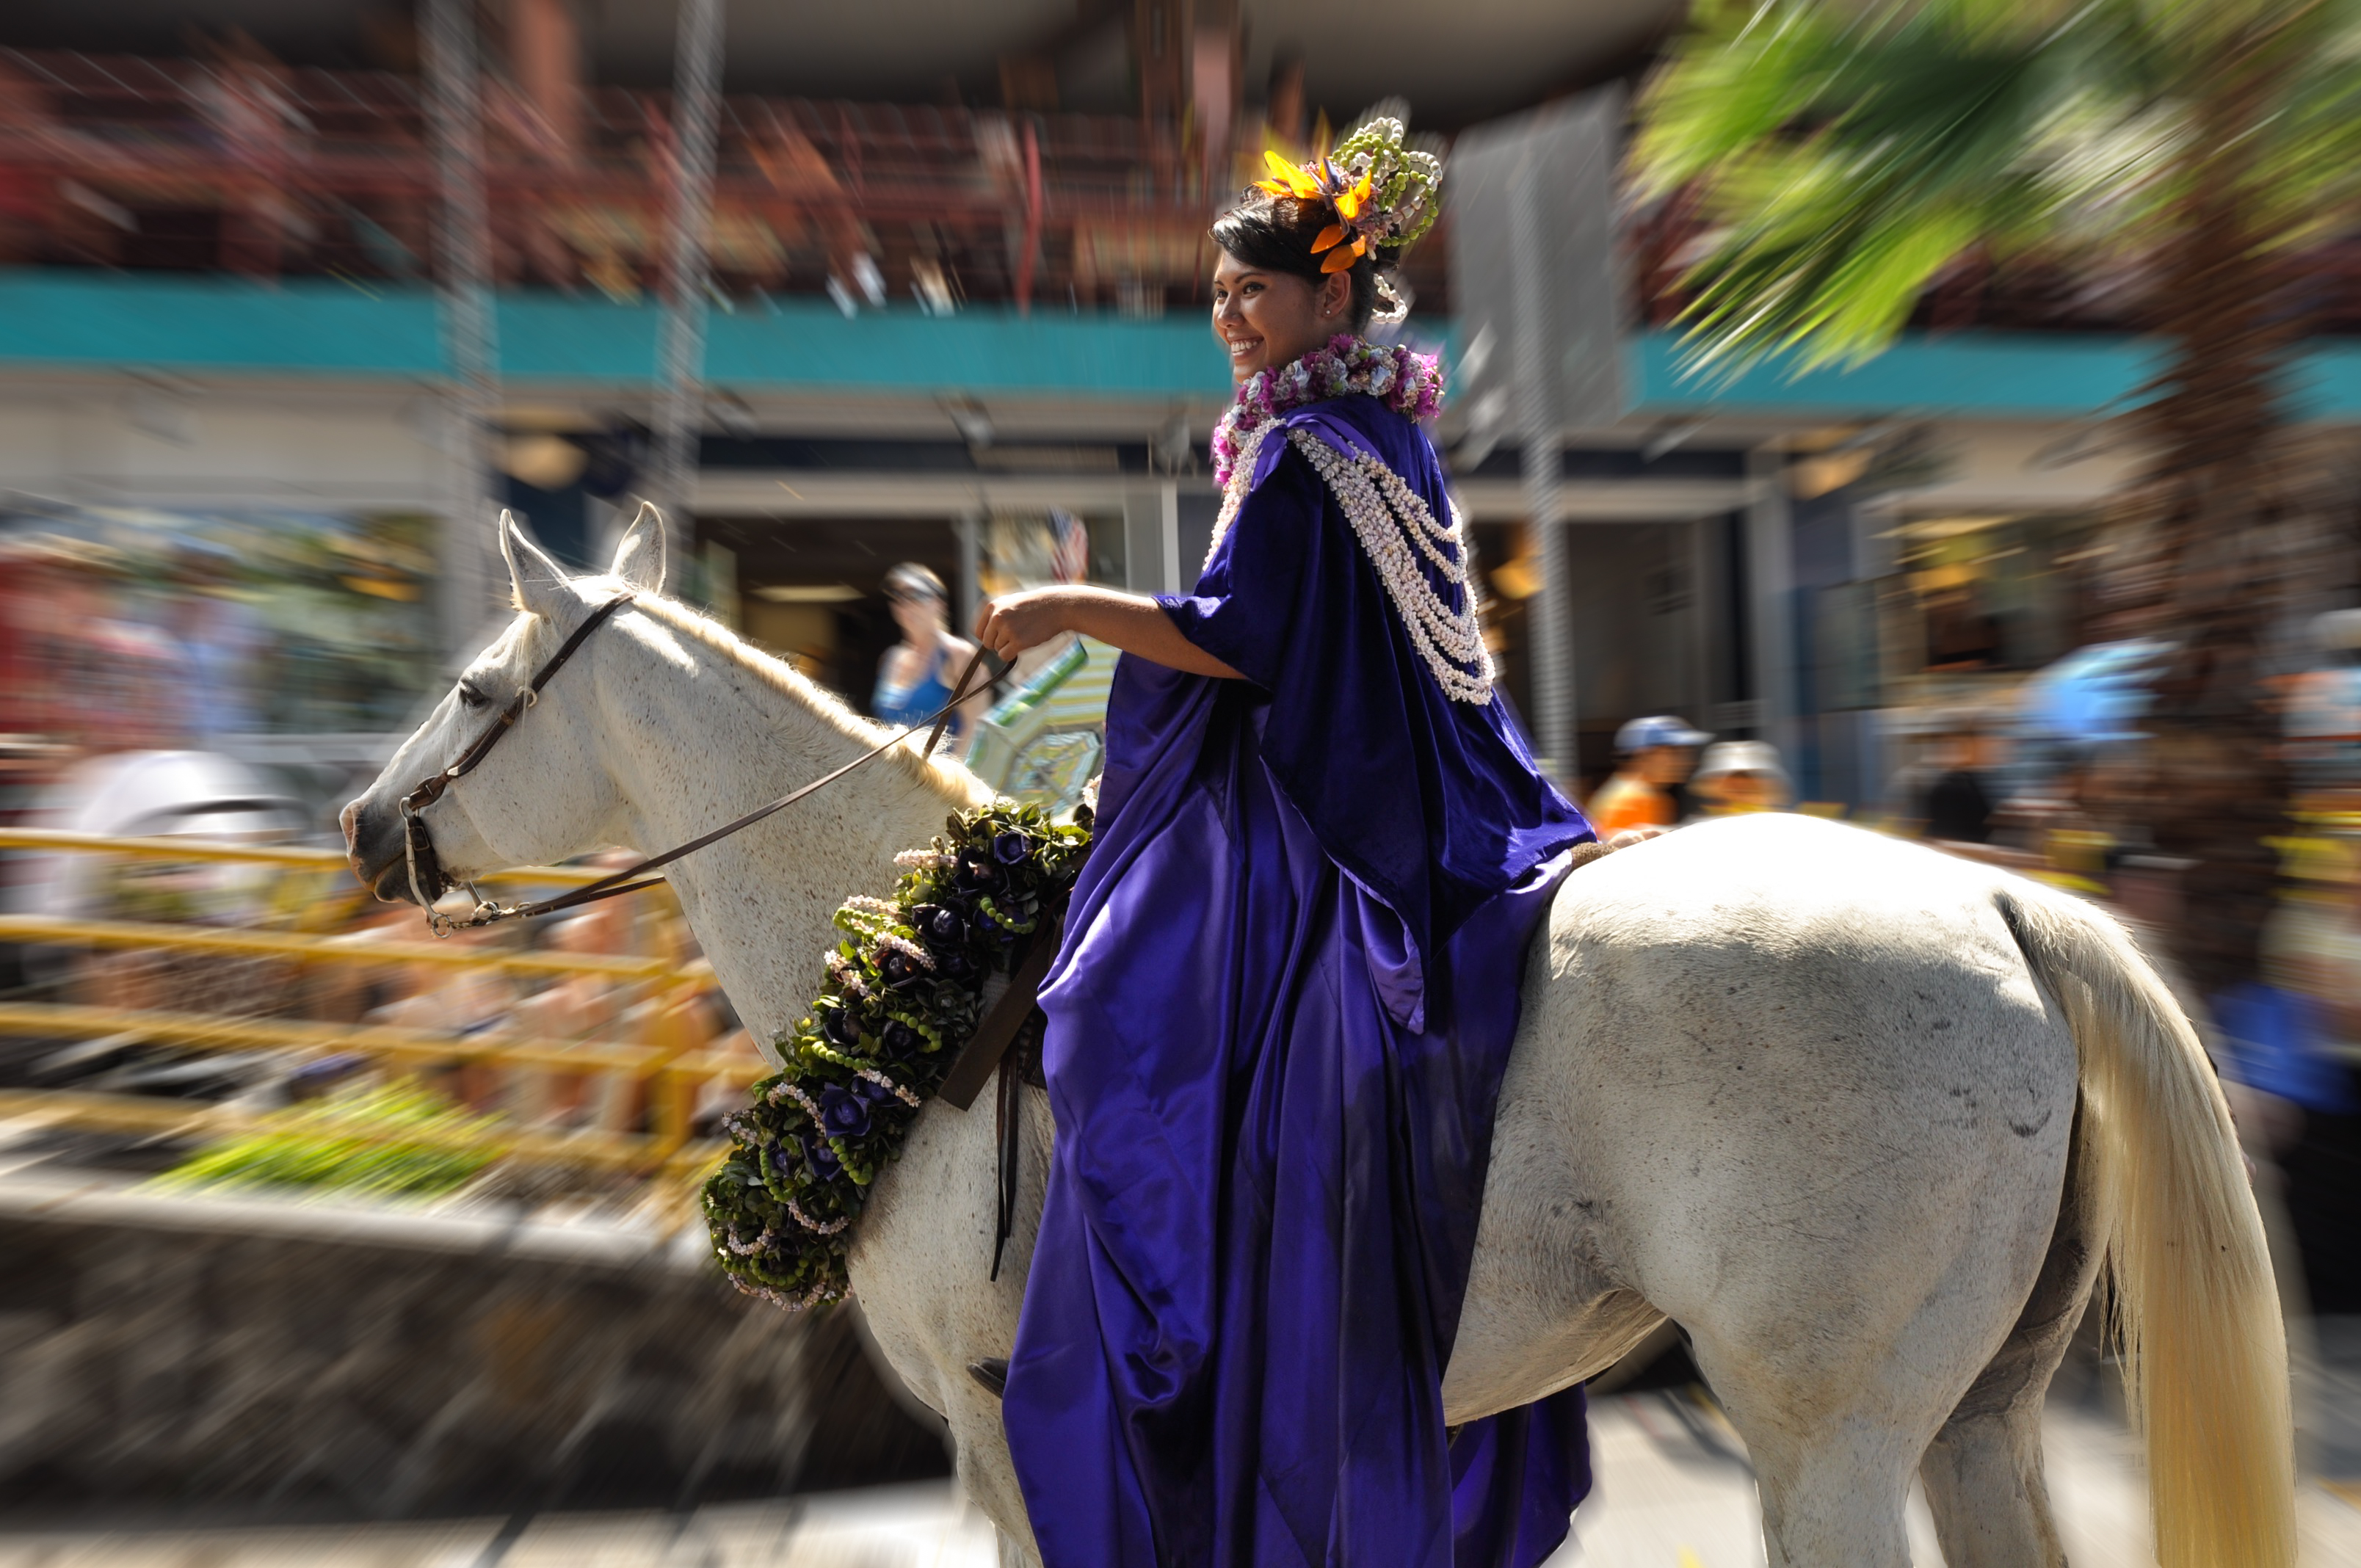 KING KAMEHAMEHA DAY CELEBRATION PARADE — HISTORIC KAILUA VILLAGE